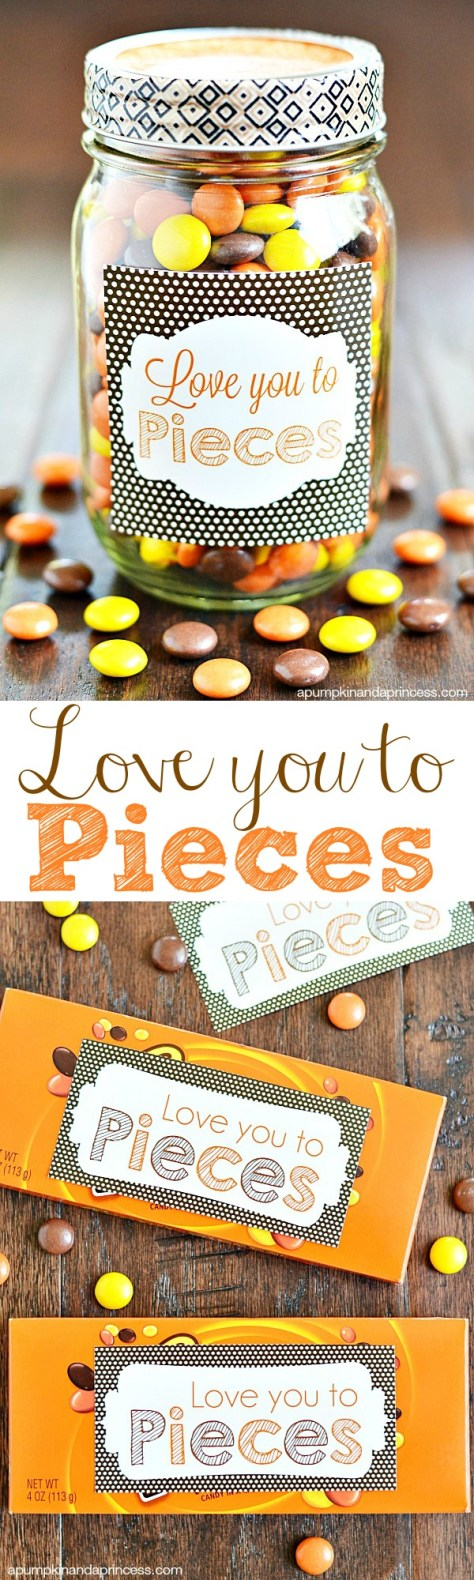 Love You To Pieces Sweets Jar Tutorial